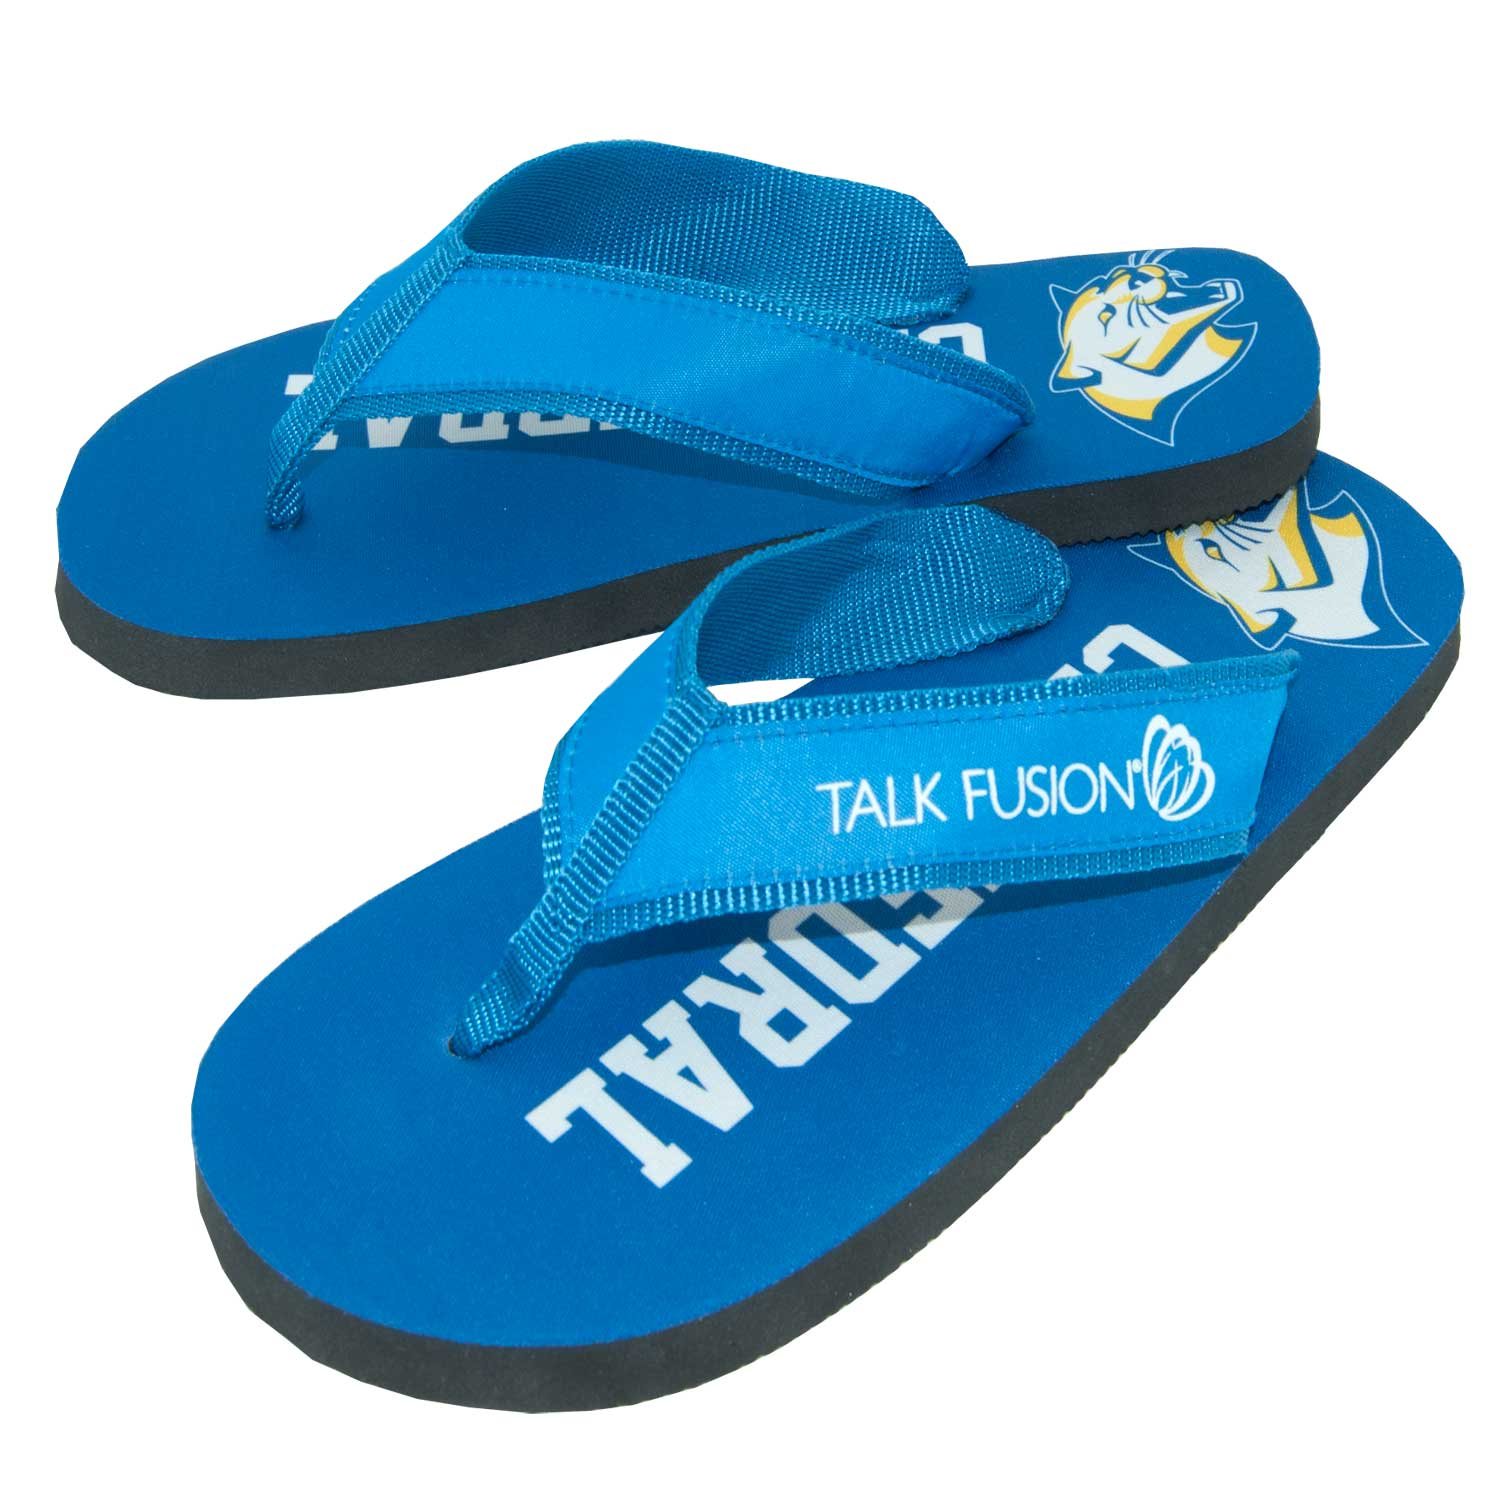 1eff9b80e3d940 We have great new styles in Flip Flops all ready for your custom  logo mascot and in your colors! …Flip Flops are THE perfect idea ...